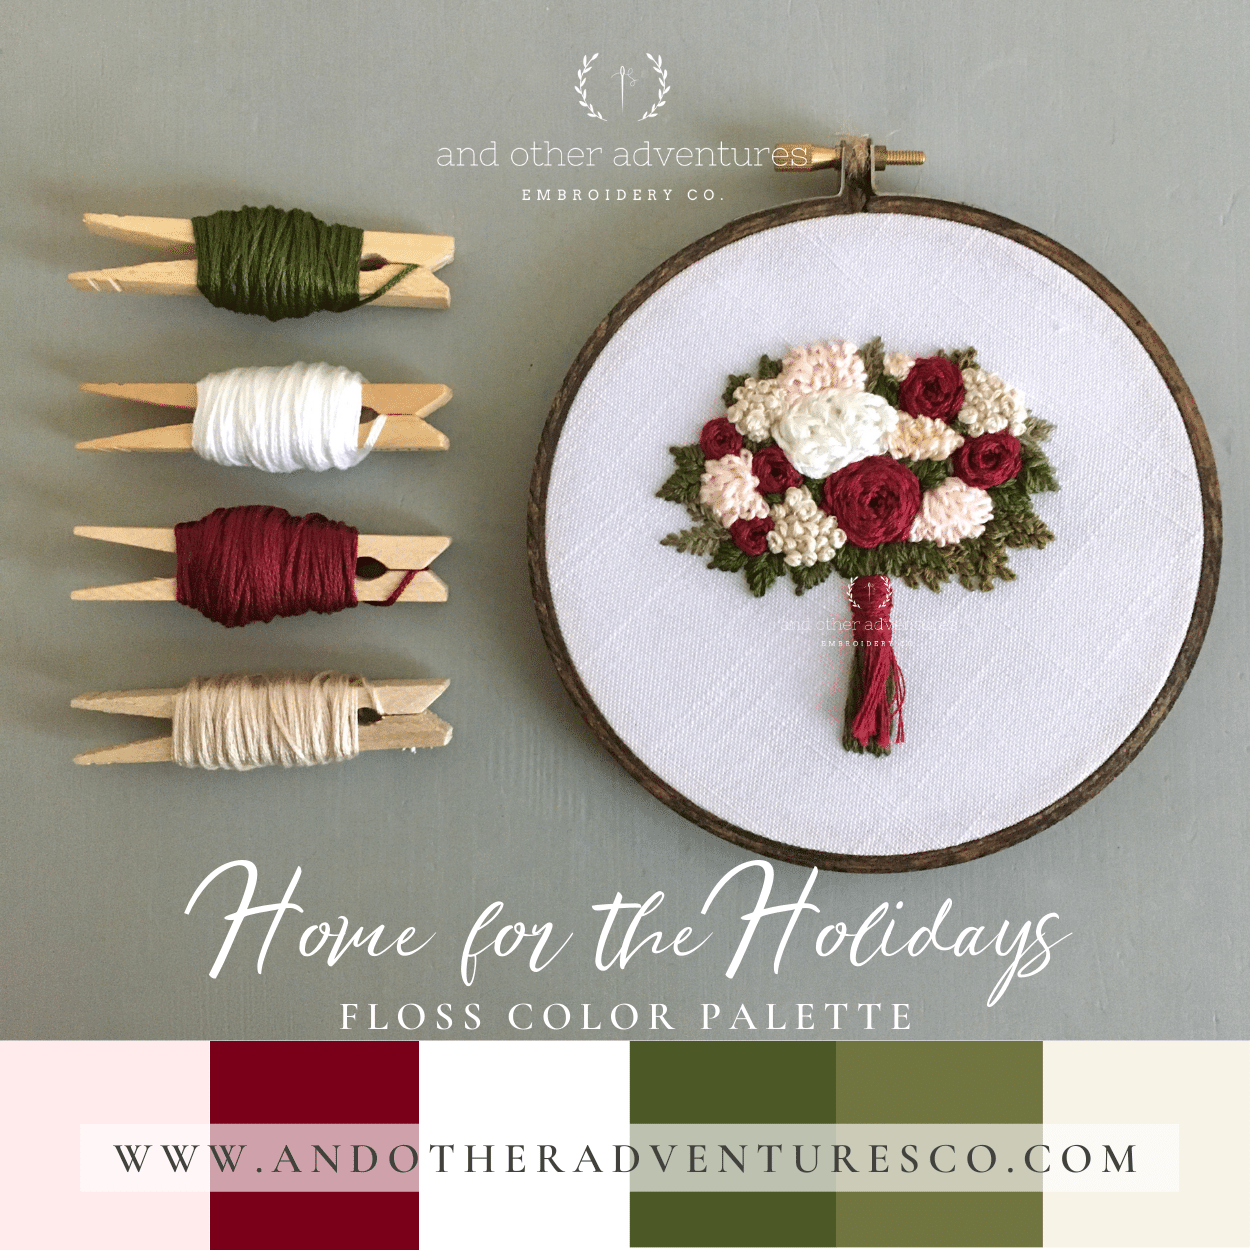 Home for the Holidays Hand Embroidery Floss Color Palette by And Other Adventures Embroidery Co